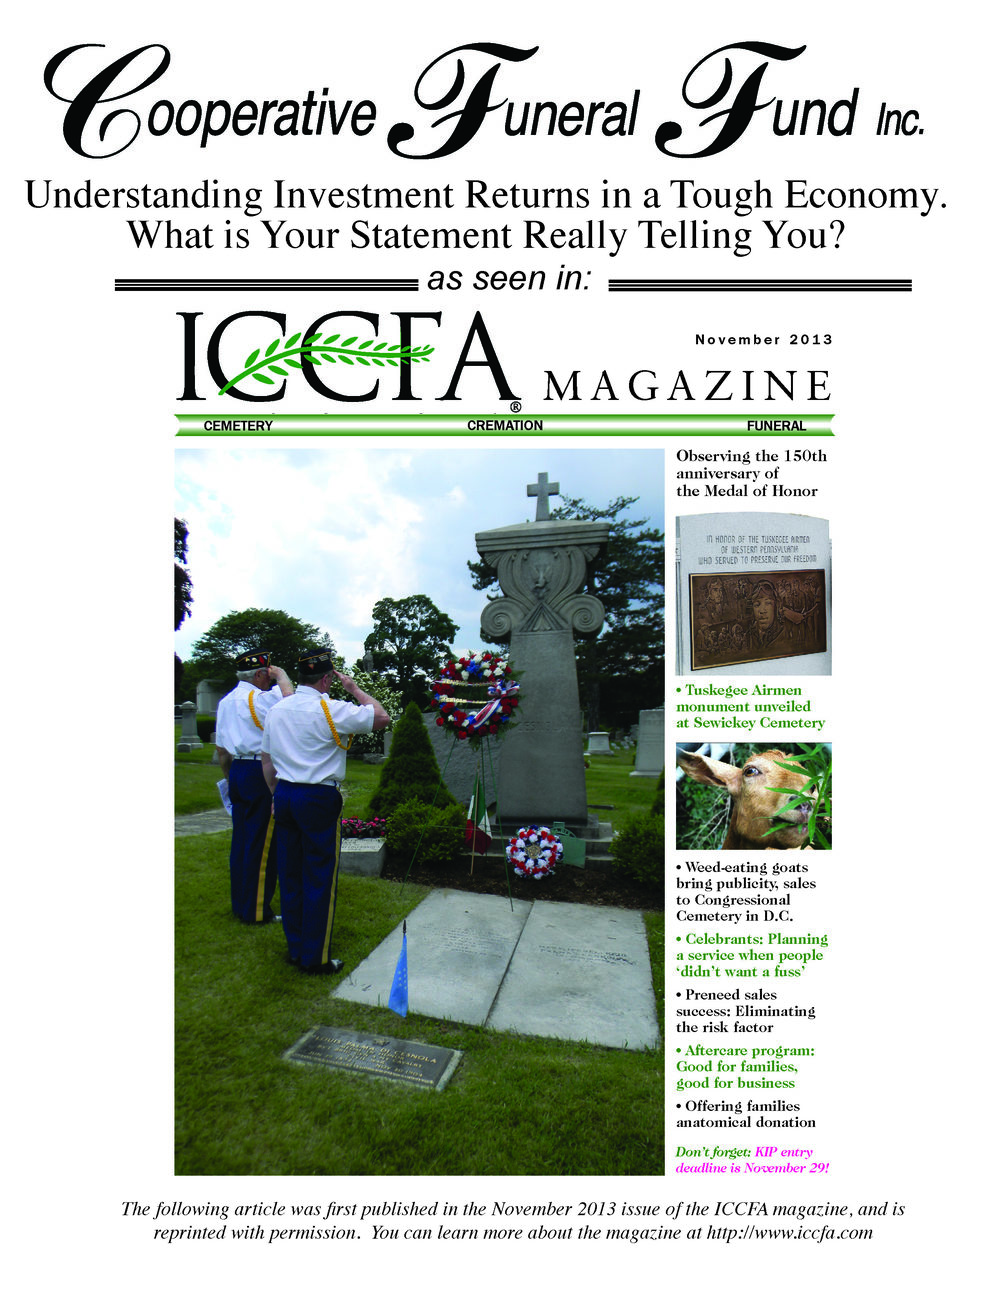 10ICCFAToddarticle20120926_Page_1.jpg